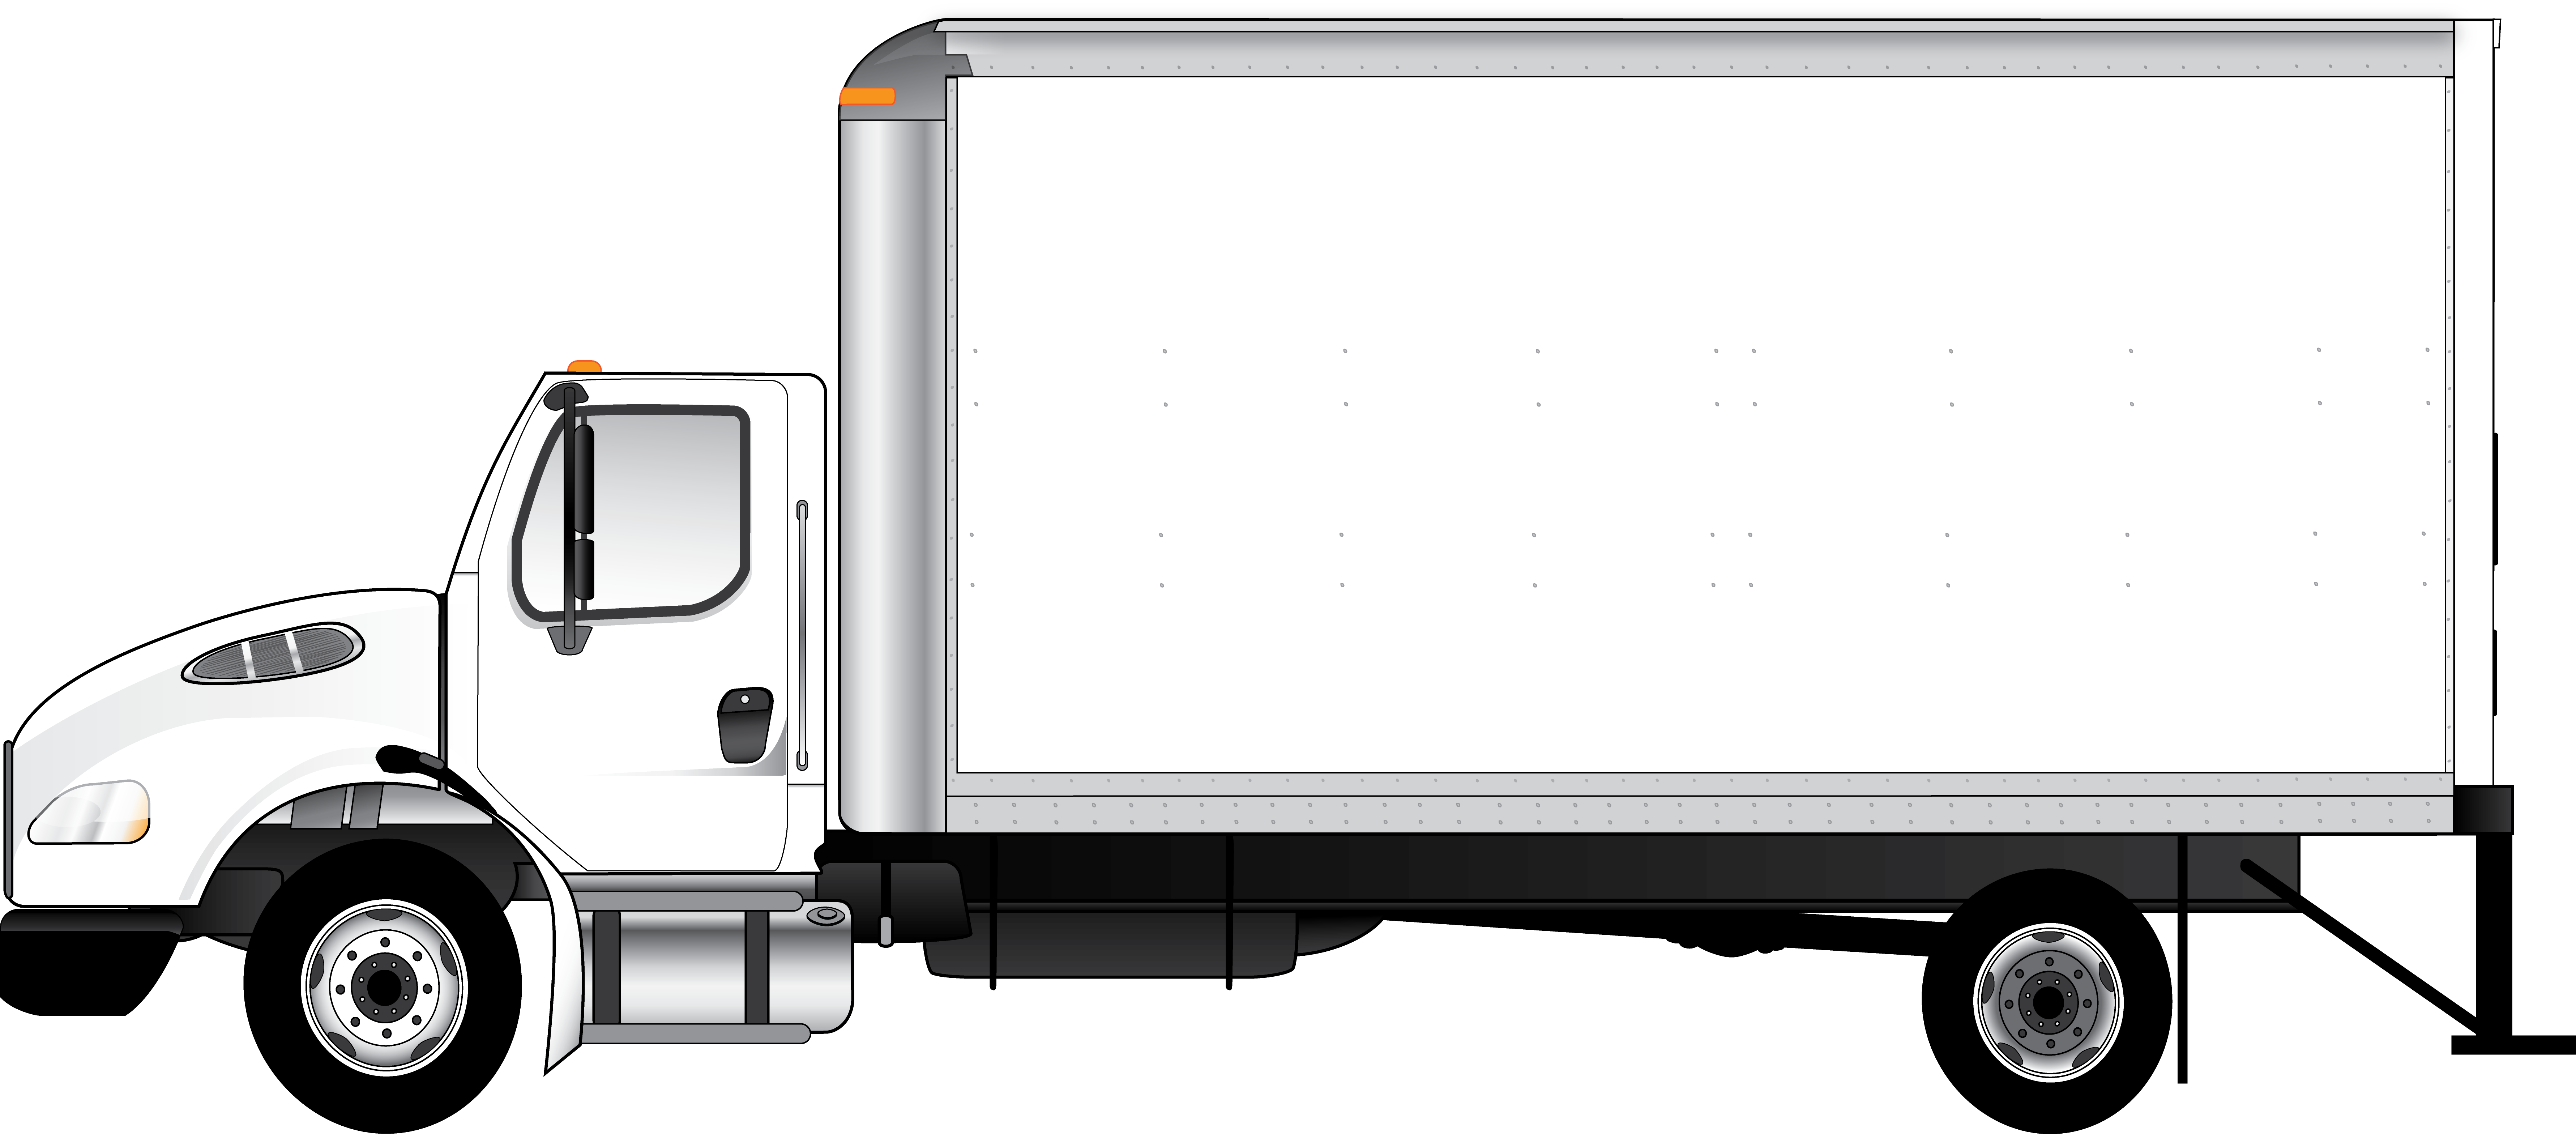 7125x3136 15 Trucking Vector Cascadia Freightliner For Free Download On